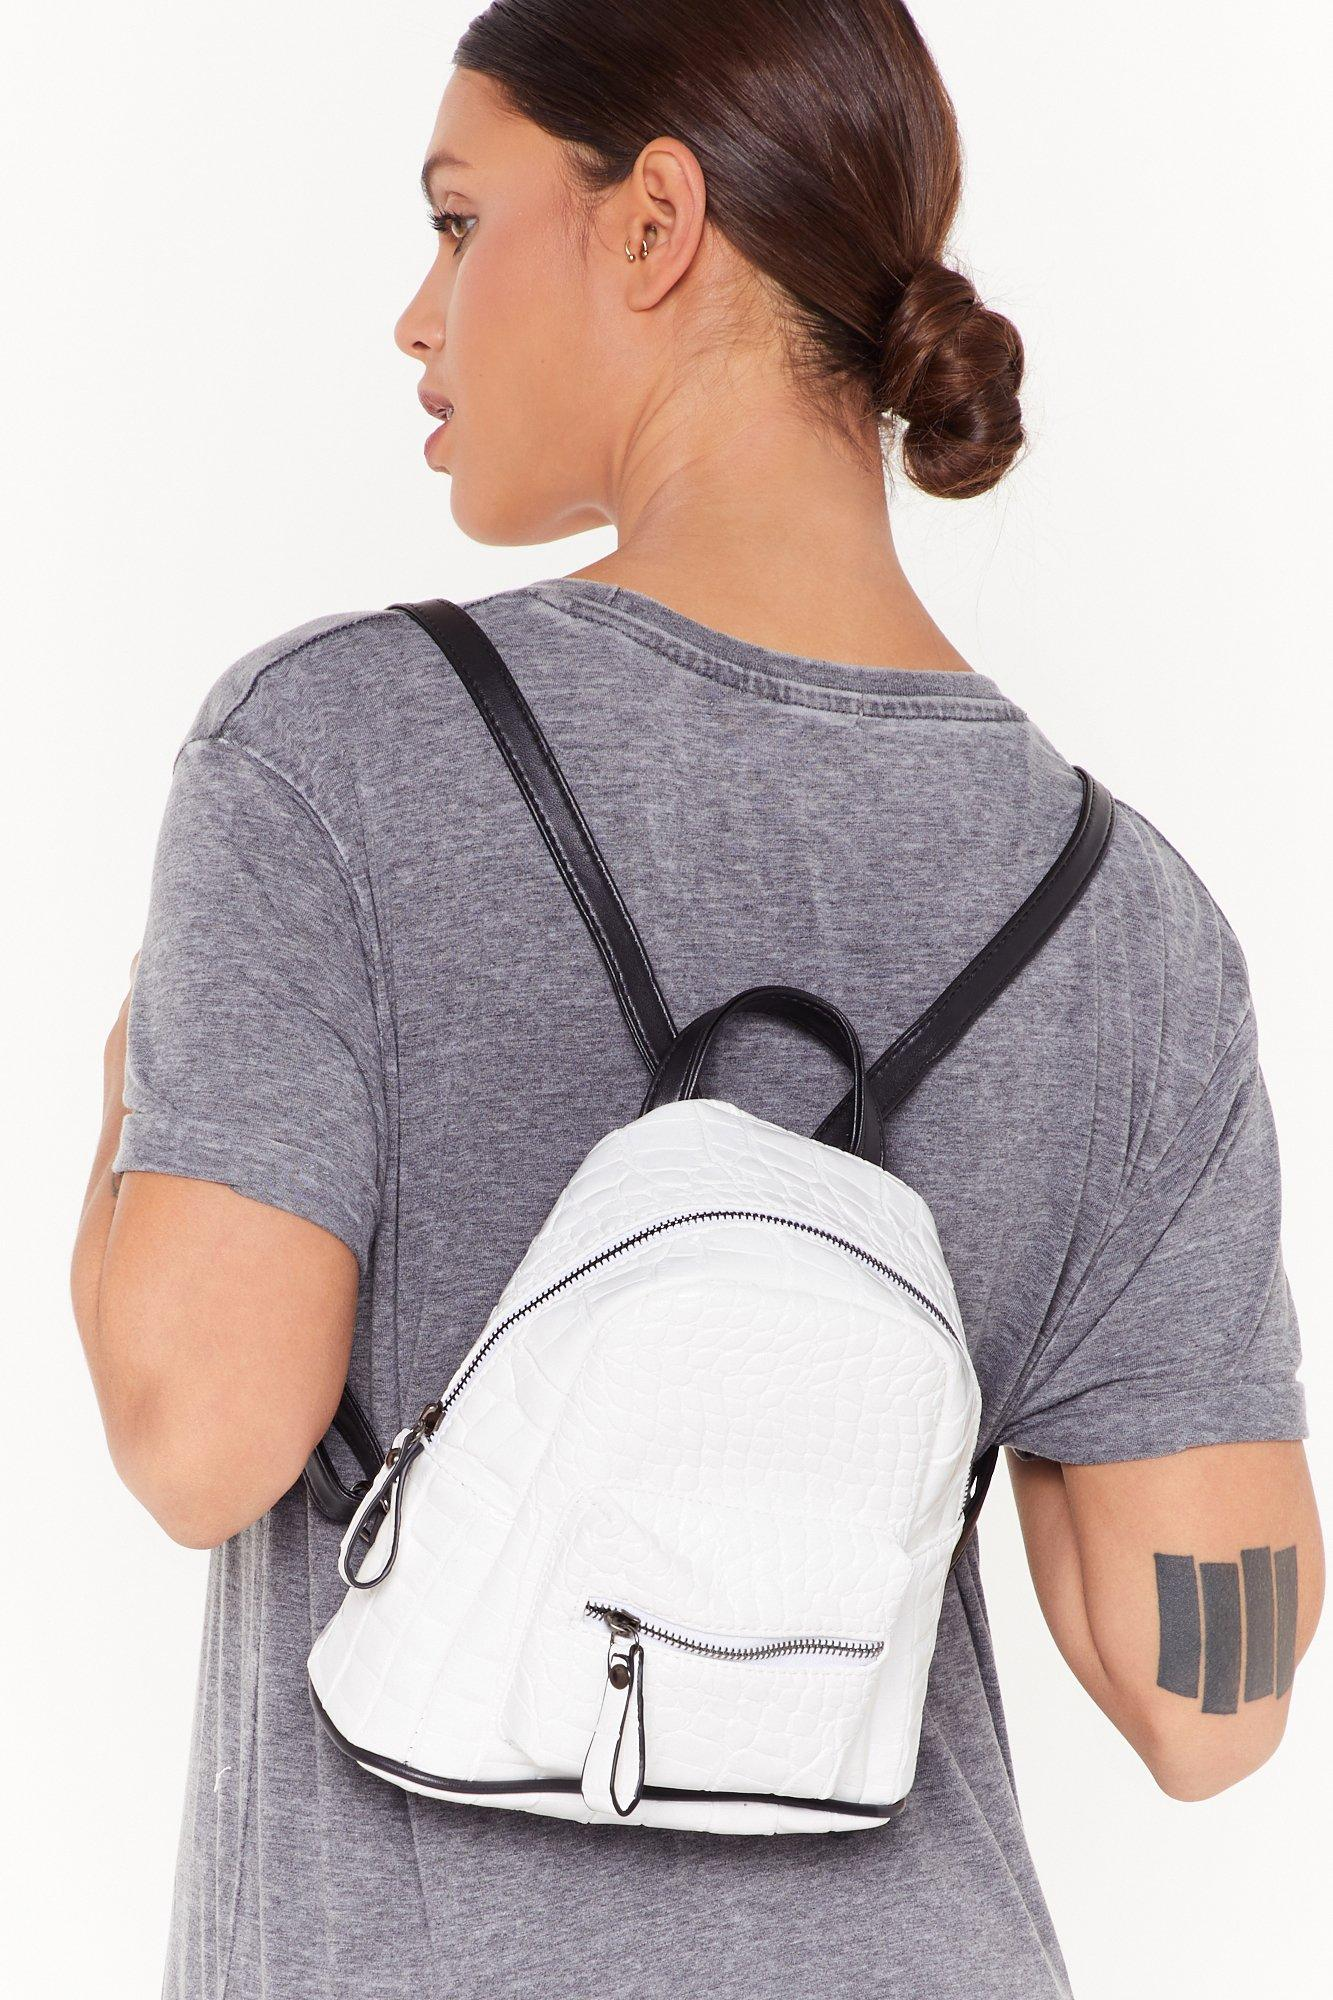 Image of WANT Back at You Croc Faux Leather Backpack